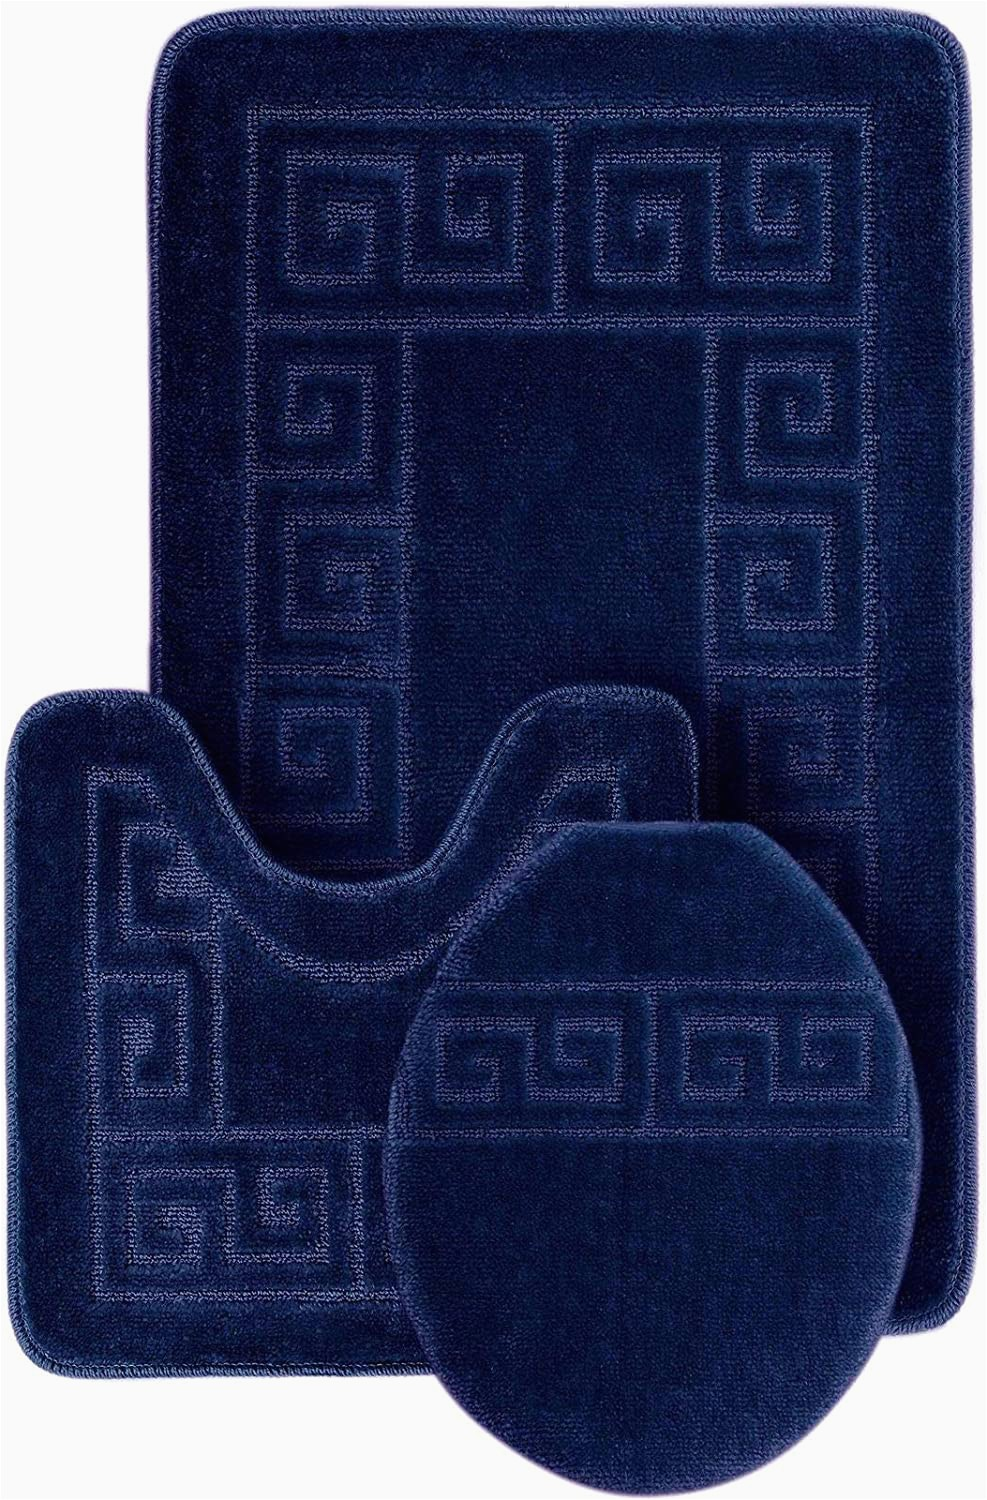 """Navy Bath Rug Set Wpm World Products Mart Bathroom Rugs Set 3 Piece Bath Pattern Rug 20""""x32"""" Contour Mats 20""""x20"""" with Lid Cover Navy"""